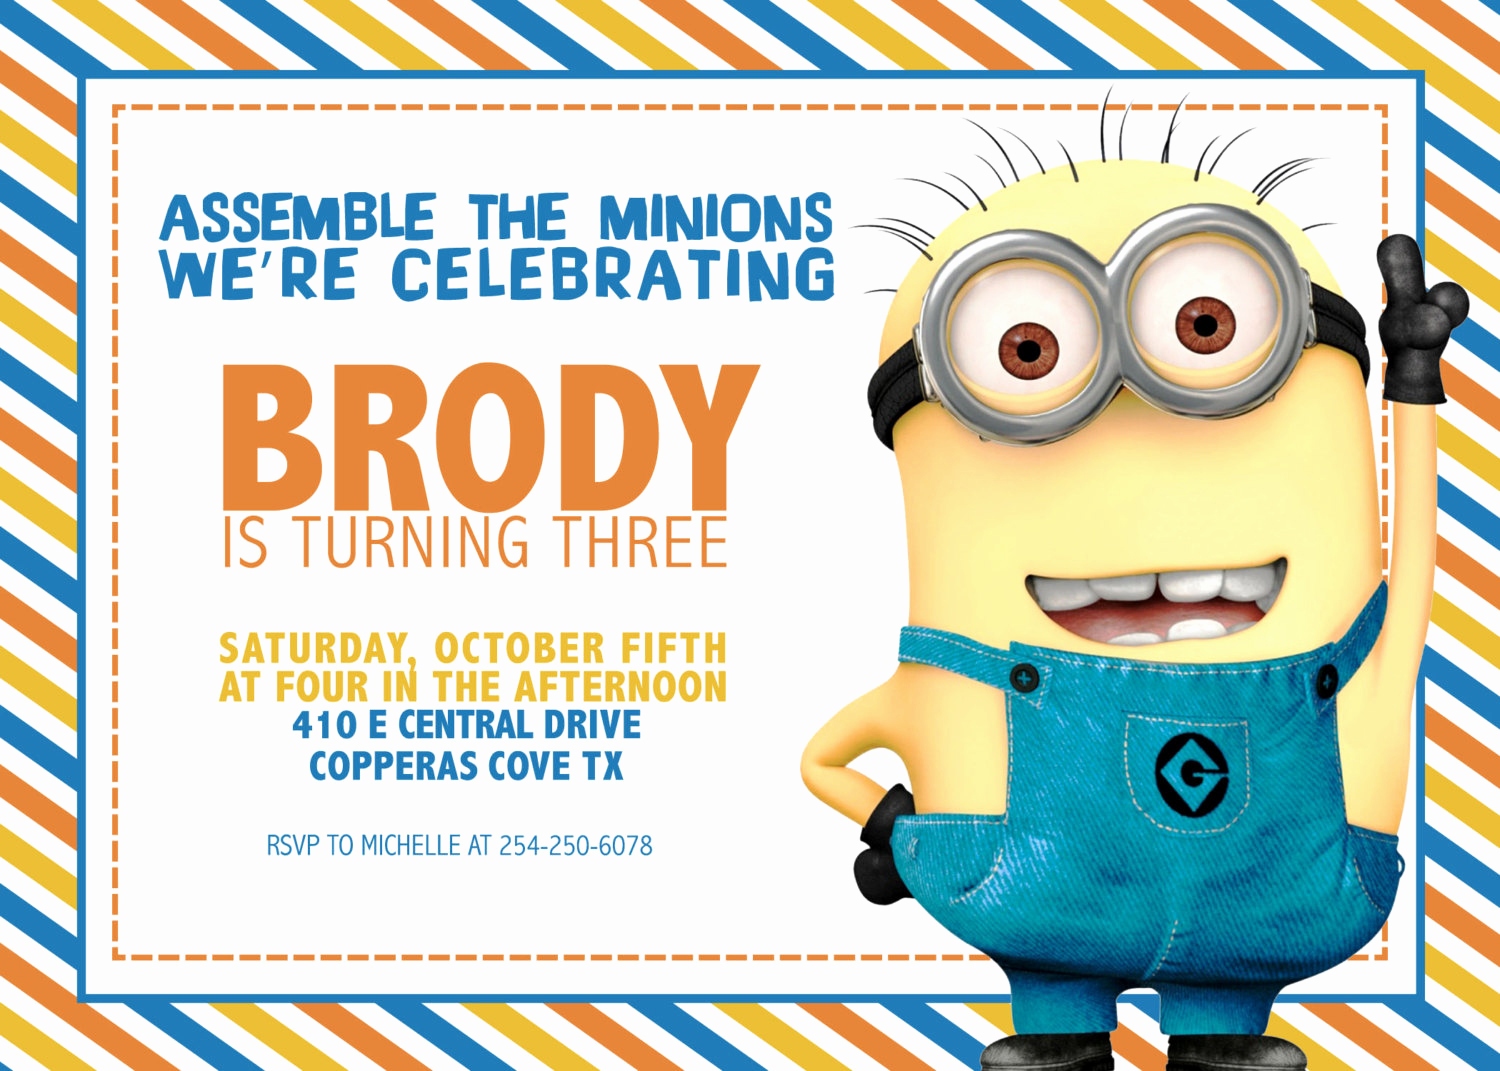 Minions Birthday Invitation Maker Inspirational Free Printable Minion Birthday Party Invitations Ideas